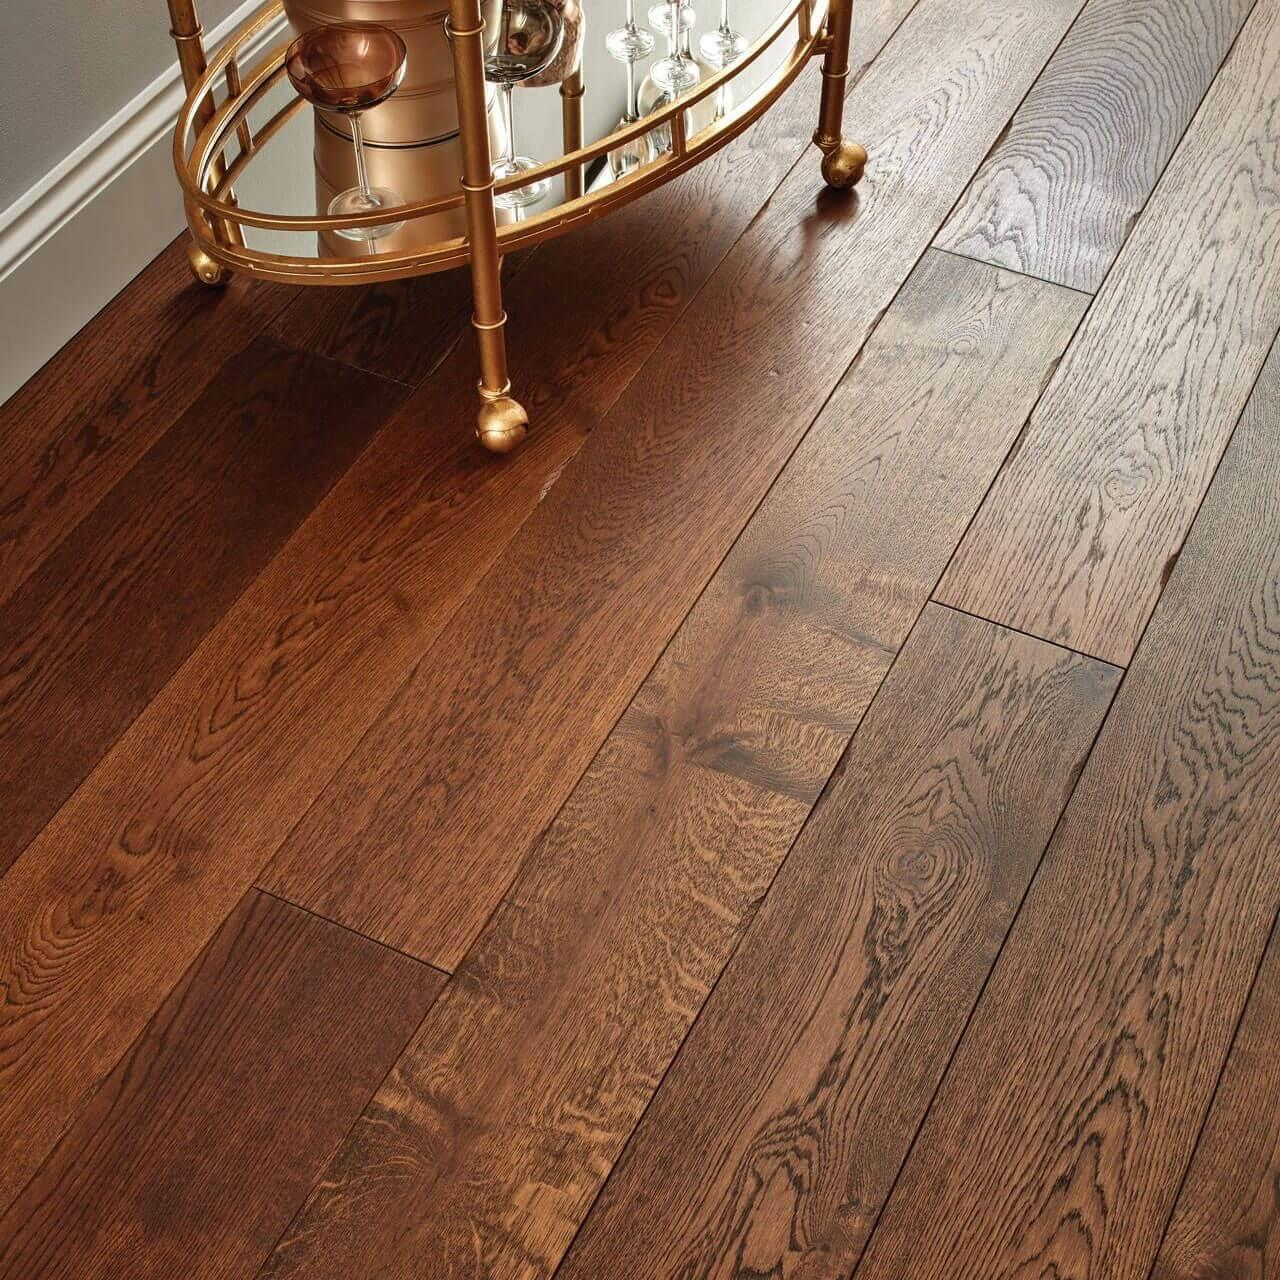 Woodpecker Chepstow Distressed Charcoal Oak Hardwax Oiled Engineered Wood Flooring 190mm 65-AOC-001